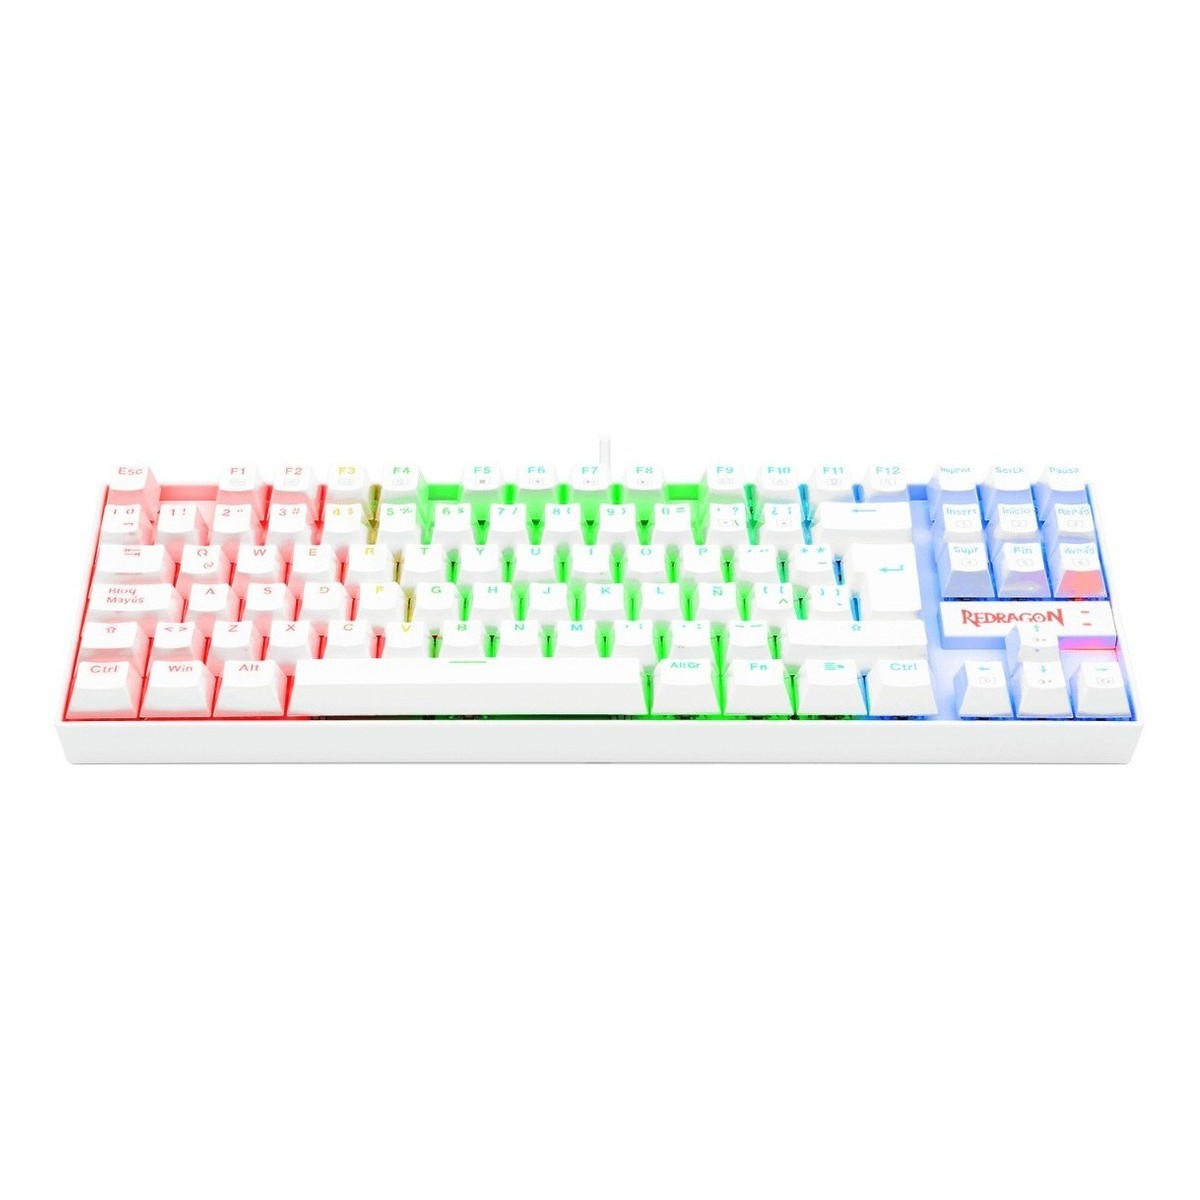 Teclado Mecânico Gamer Redragon Kumara Lunar K552, RGB, Switch Brown, ABNT2, White, K552W-RGB (PT-BROWN)